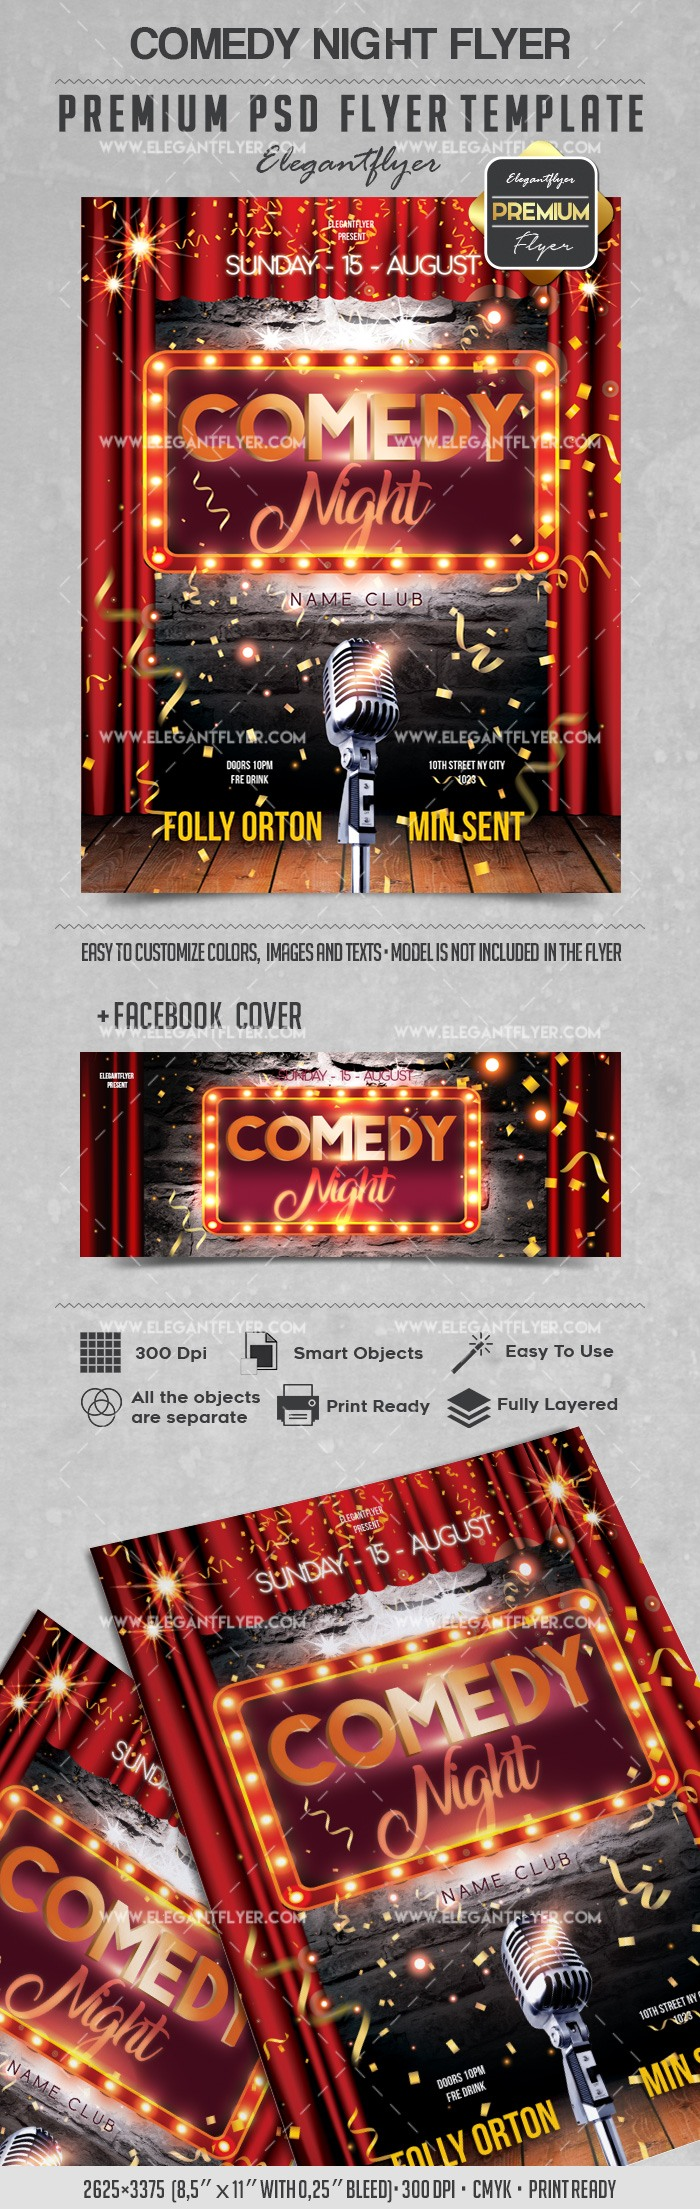 comedy night  u2013 flyer psd template  u2013 by elegantflyer